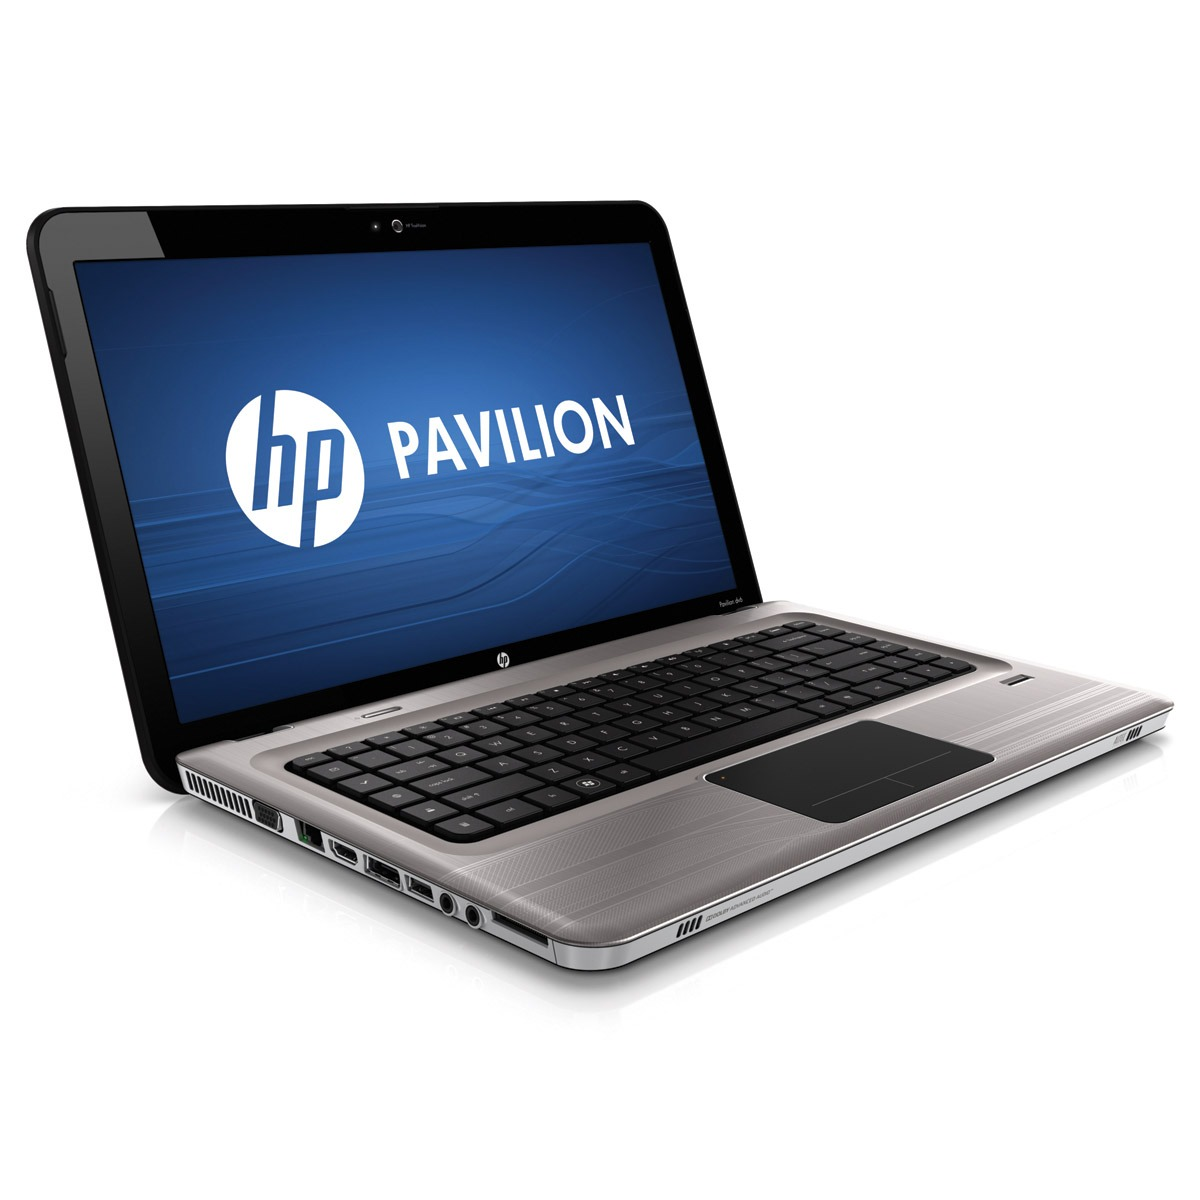 hp pavilion dv6 3172sf xd991ea abf achat vente pc portable sur. Black Bedroom Furniture Sets. Home Design Ideas